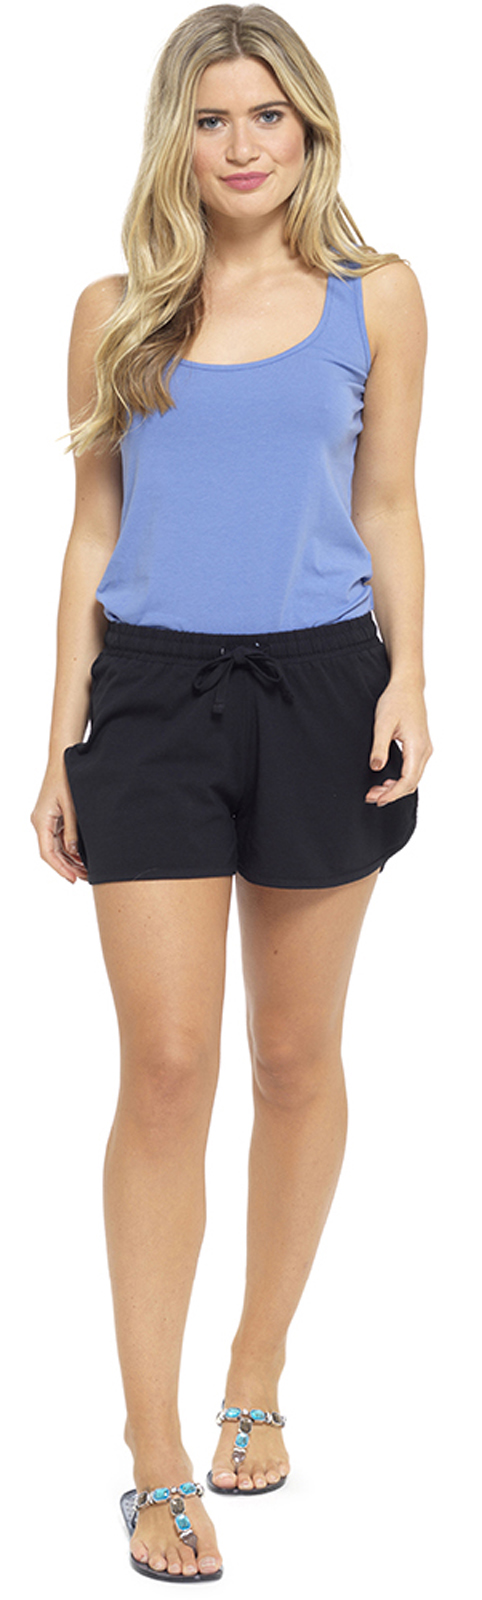 Womens Jersey Cotton Shorts With Elasticated Waist Holiday ...